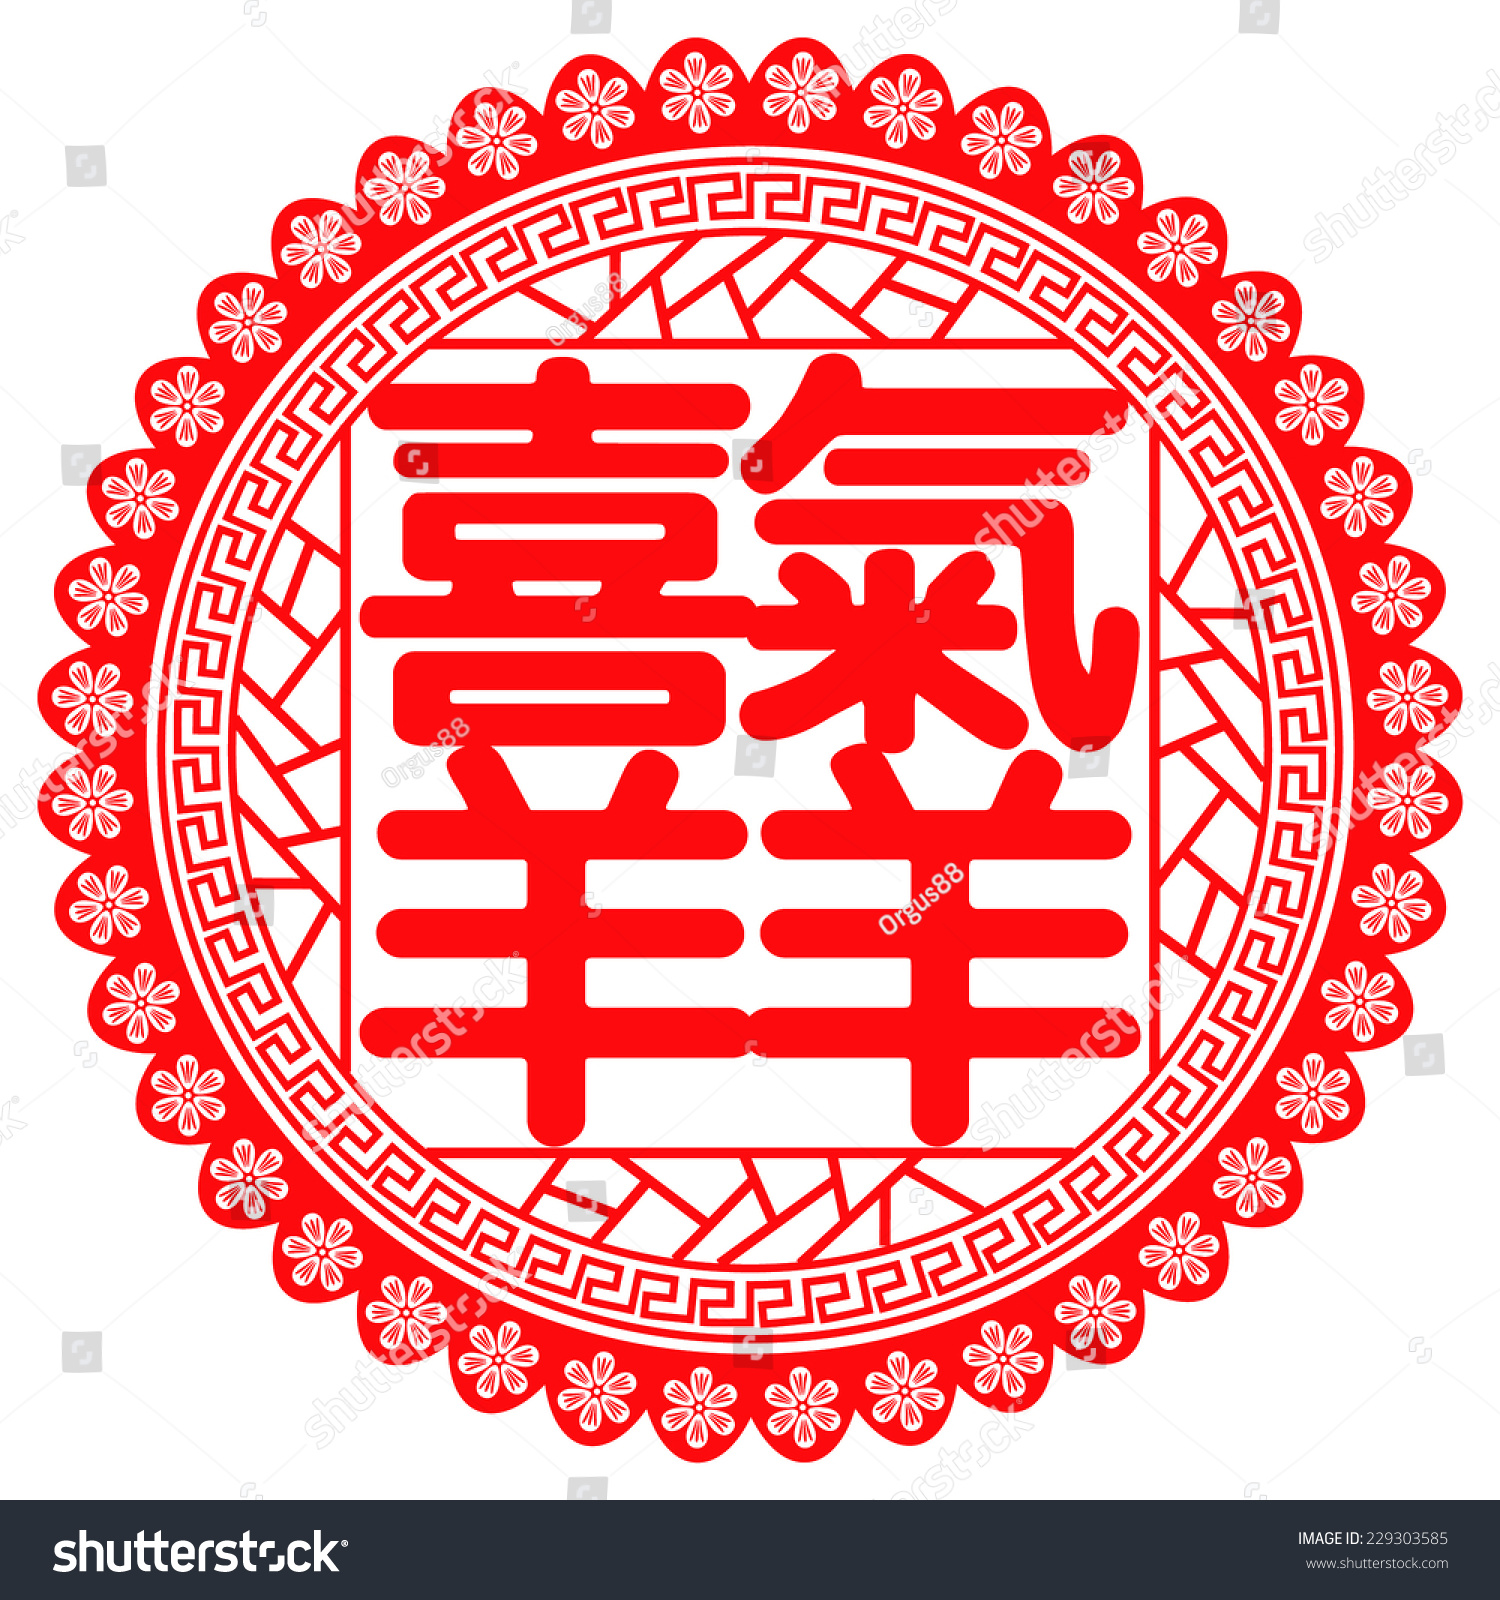 Chinese Paper Cut Out Goat Symbol Stock Vector Royalty Free